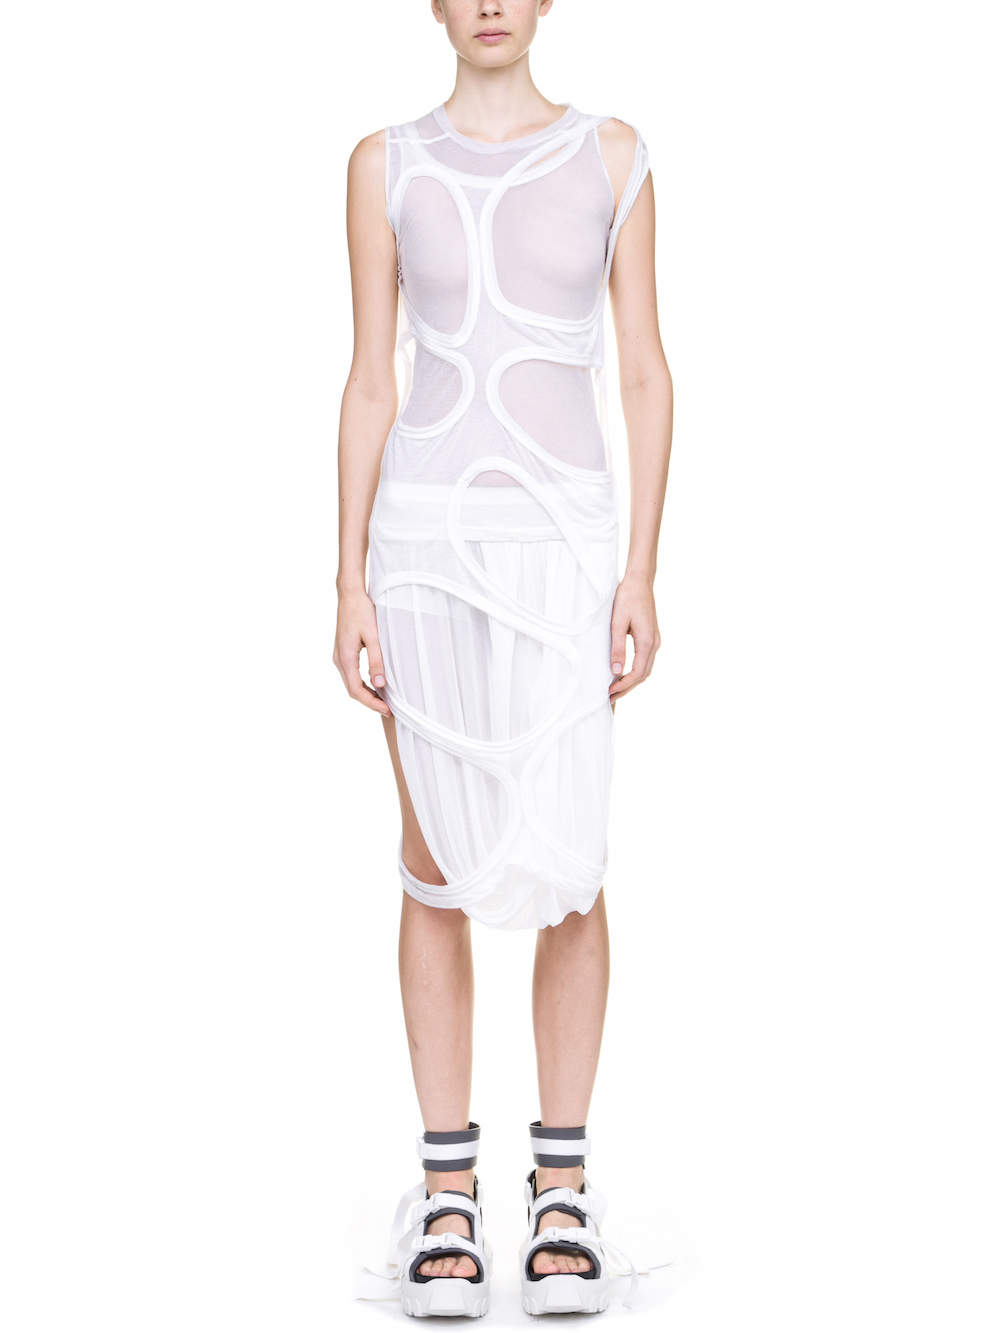 RICK OWENS MEMBRANE DRESS TEE IN WHITE